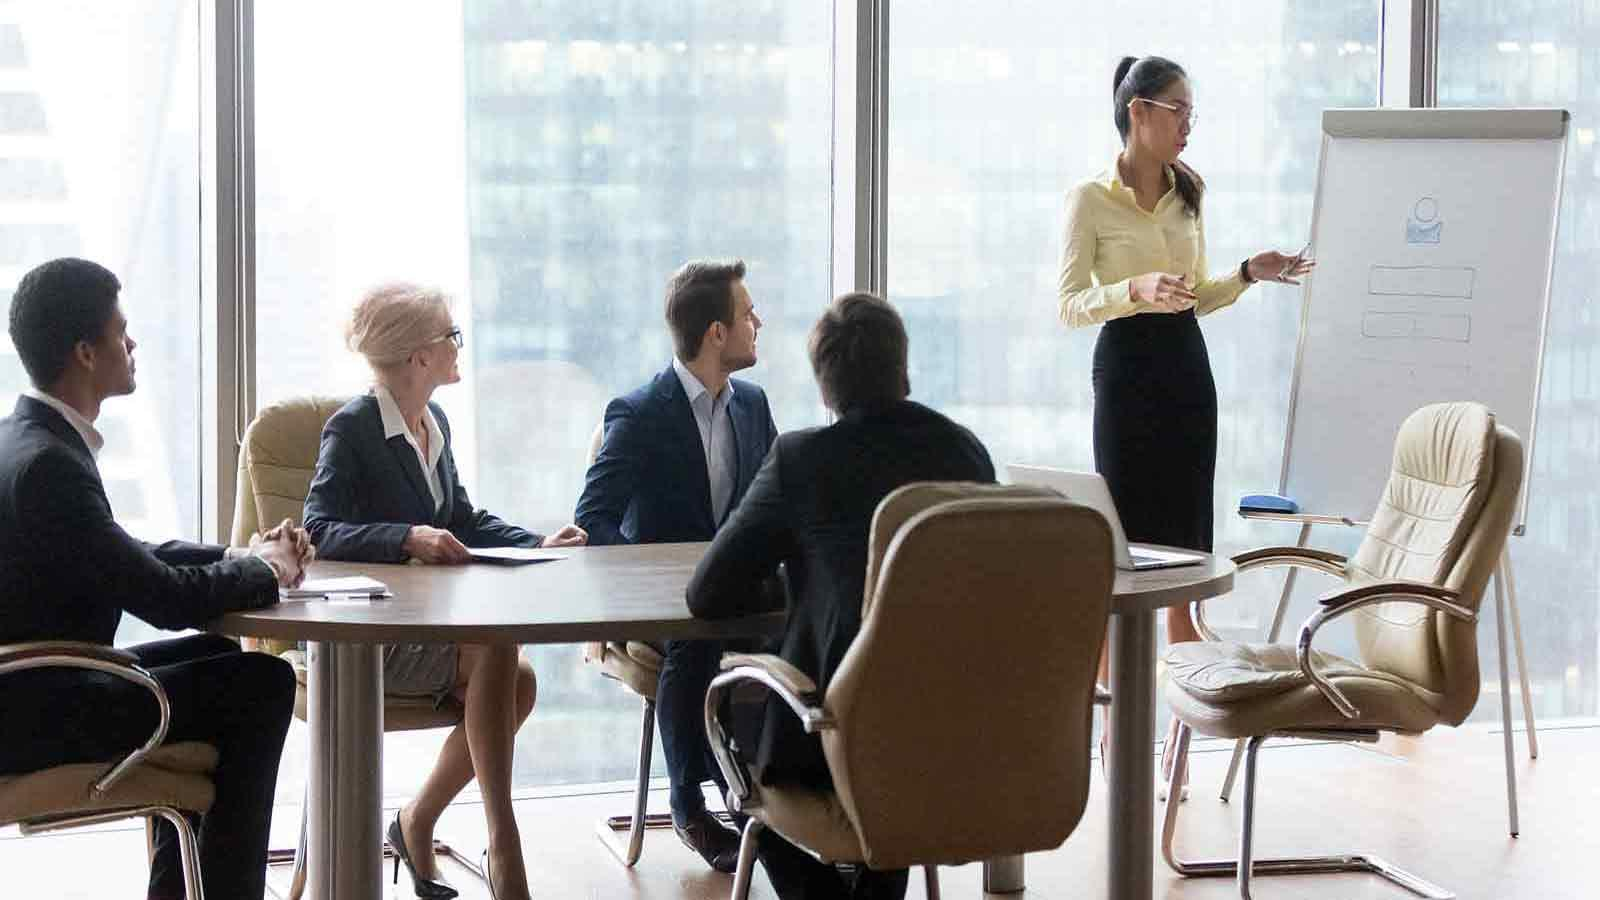 people in suits at table looking at woman presenting materials on whiteboard